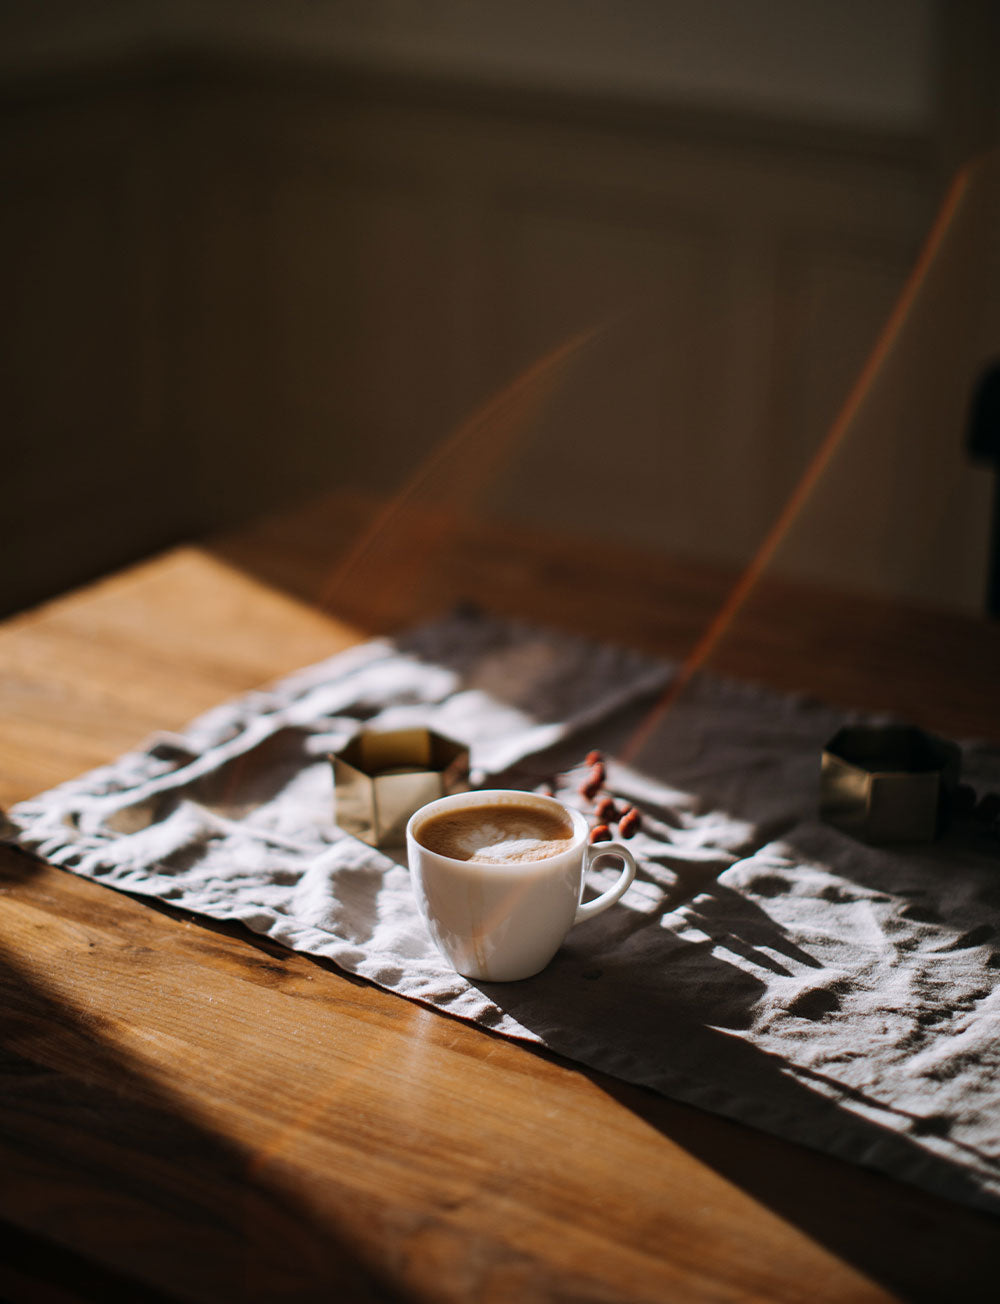 Steaming morning coffee